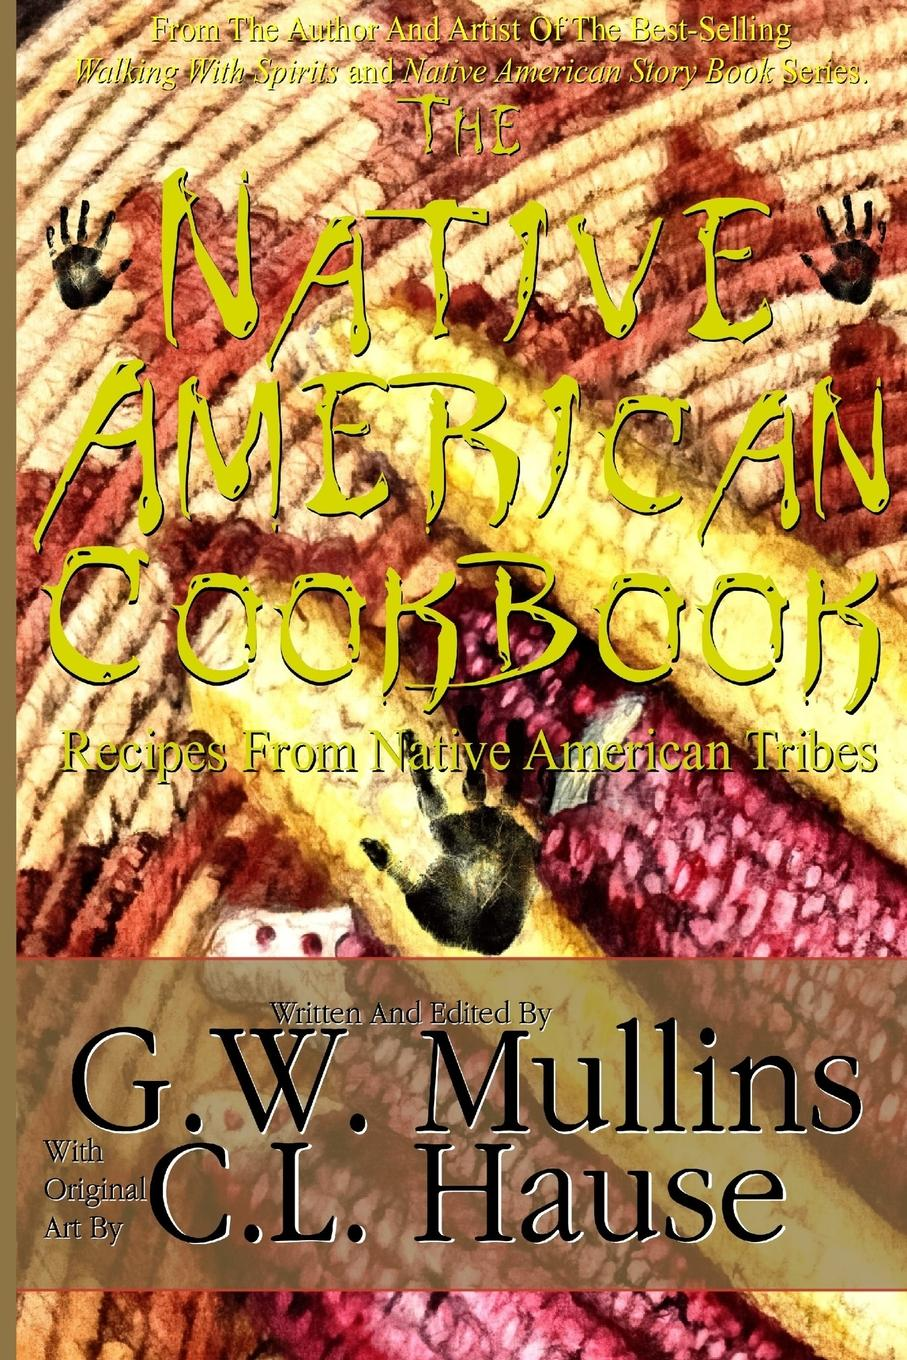 G.W. Mullins The Native American Cookbook Recipes From Native American Tribes book of bread recipes to make at home